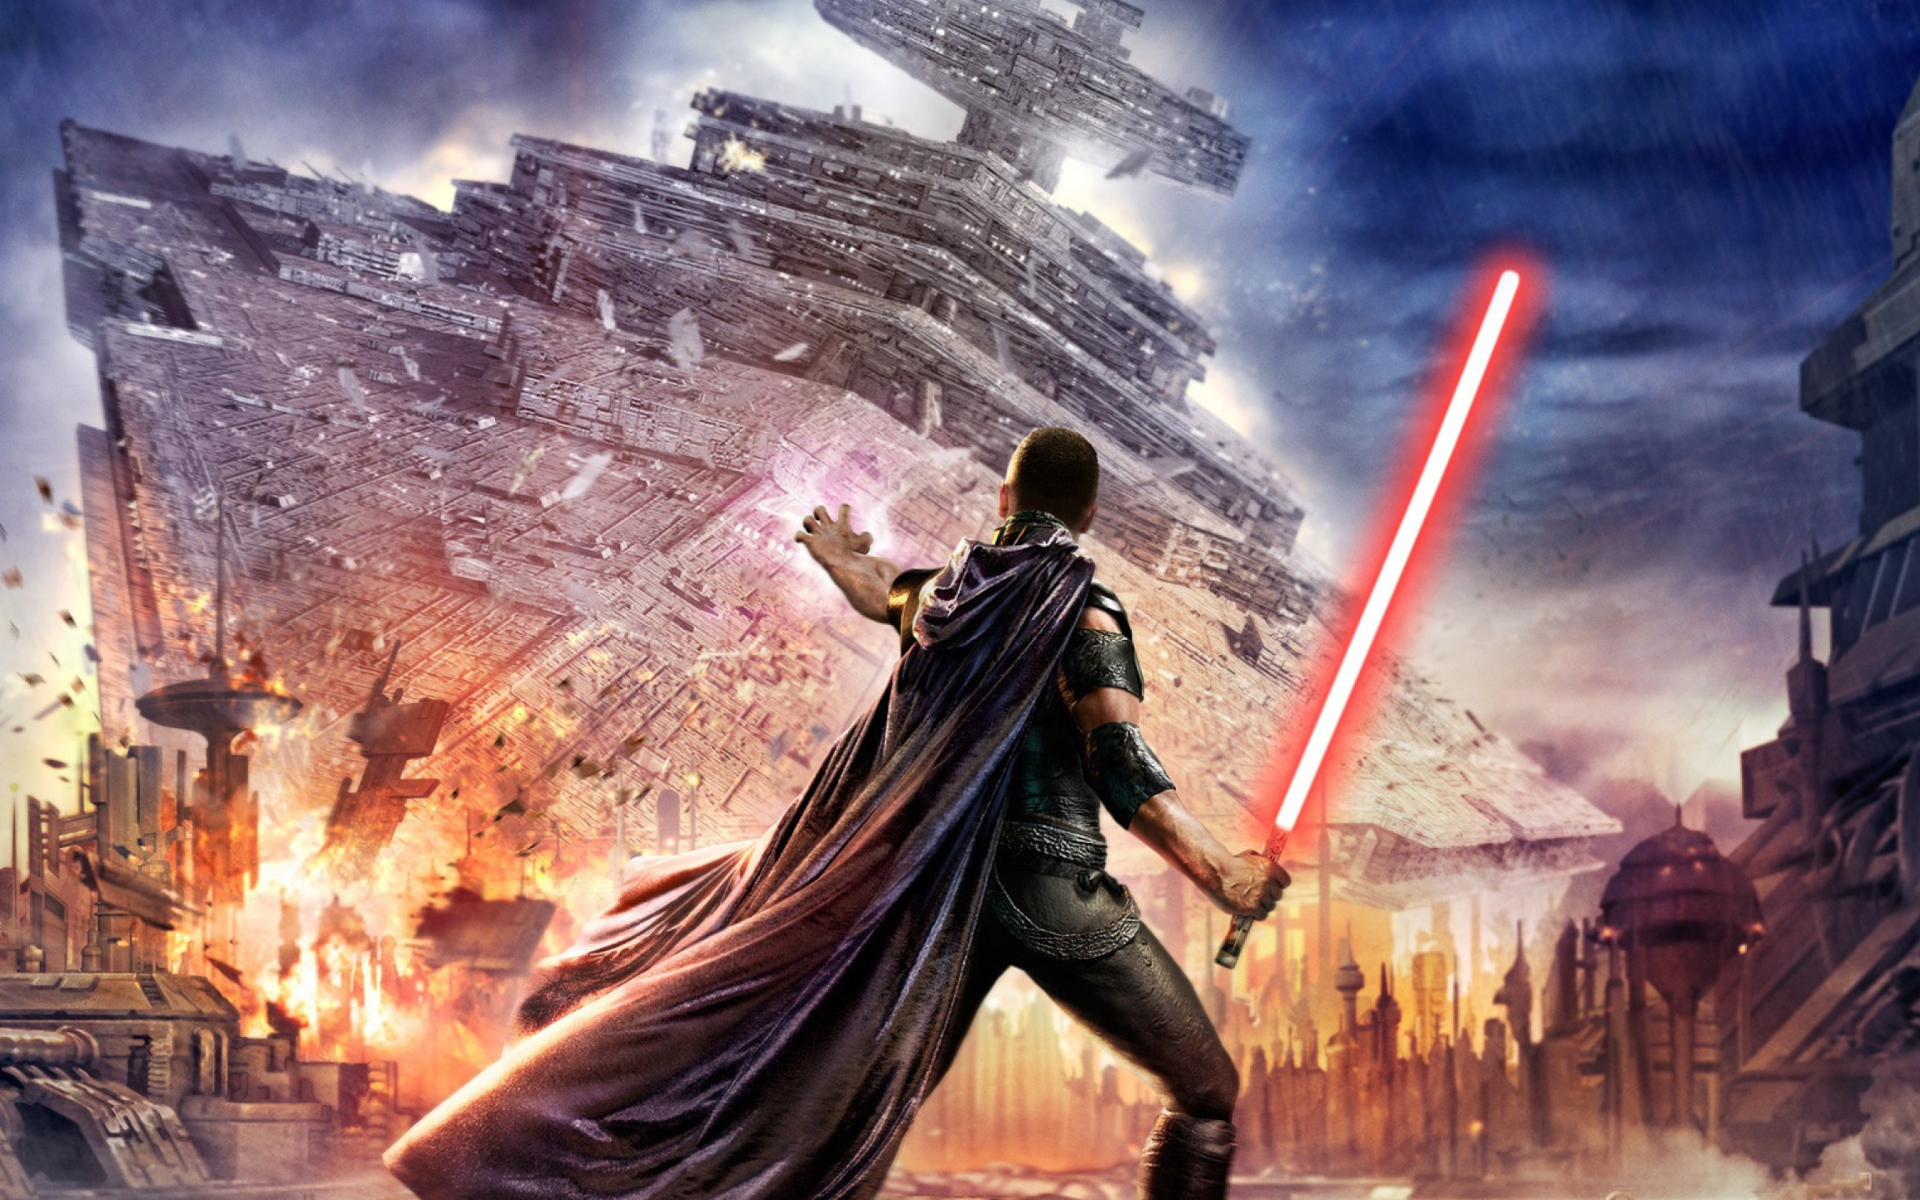 Star wars the force unleashed fondos de pantalla gratis para widescreen escritorio pc - Fondos de escritorio de star wars ...